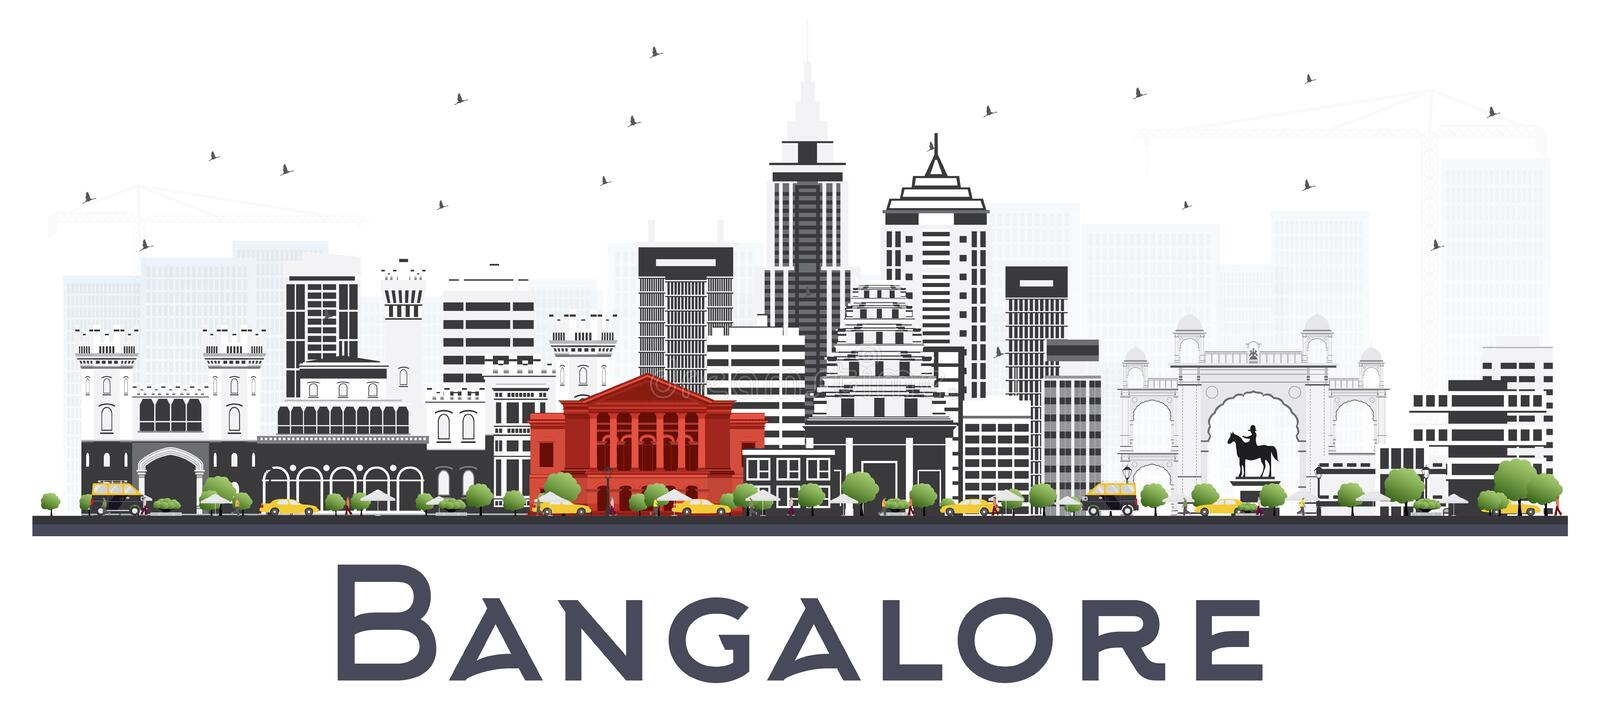 Bangalore India City Skyline with Gray Buildings Isolated on White. Vector Illustration. Business Travel and Tourism Concept with Historic Buildings. Bangalore vector illustration